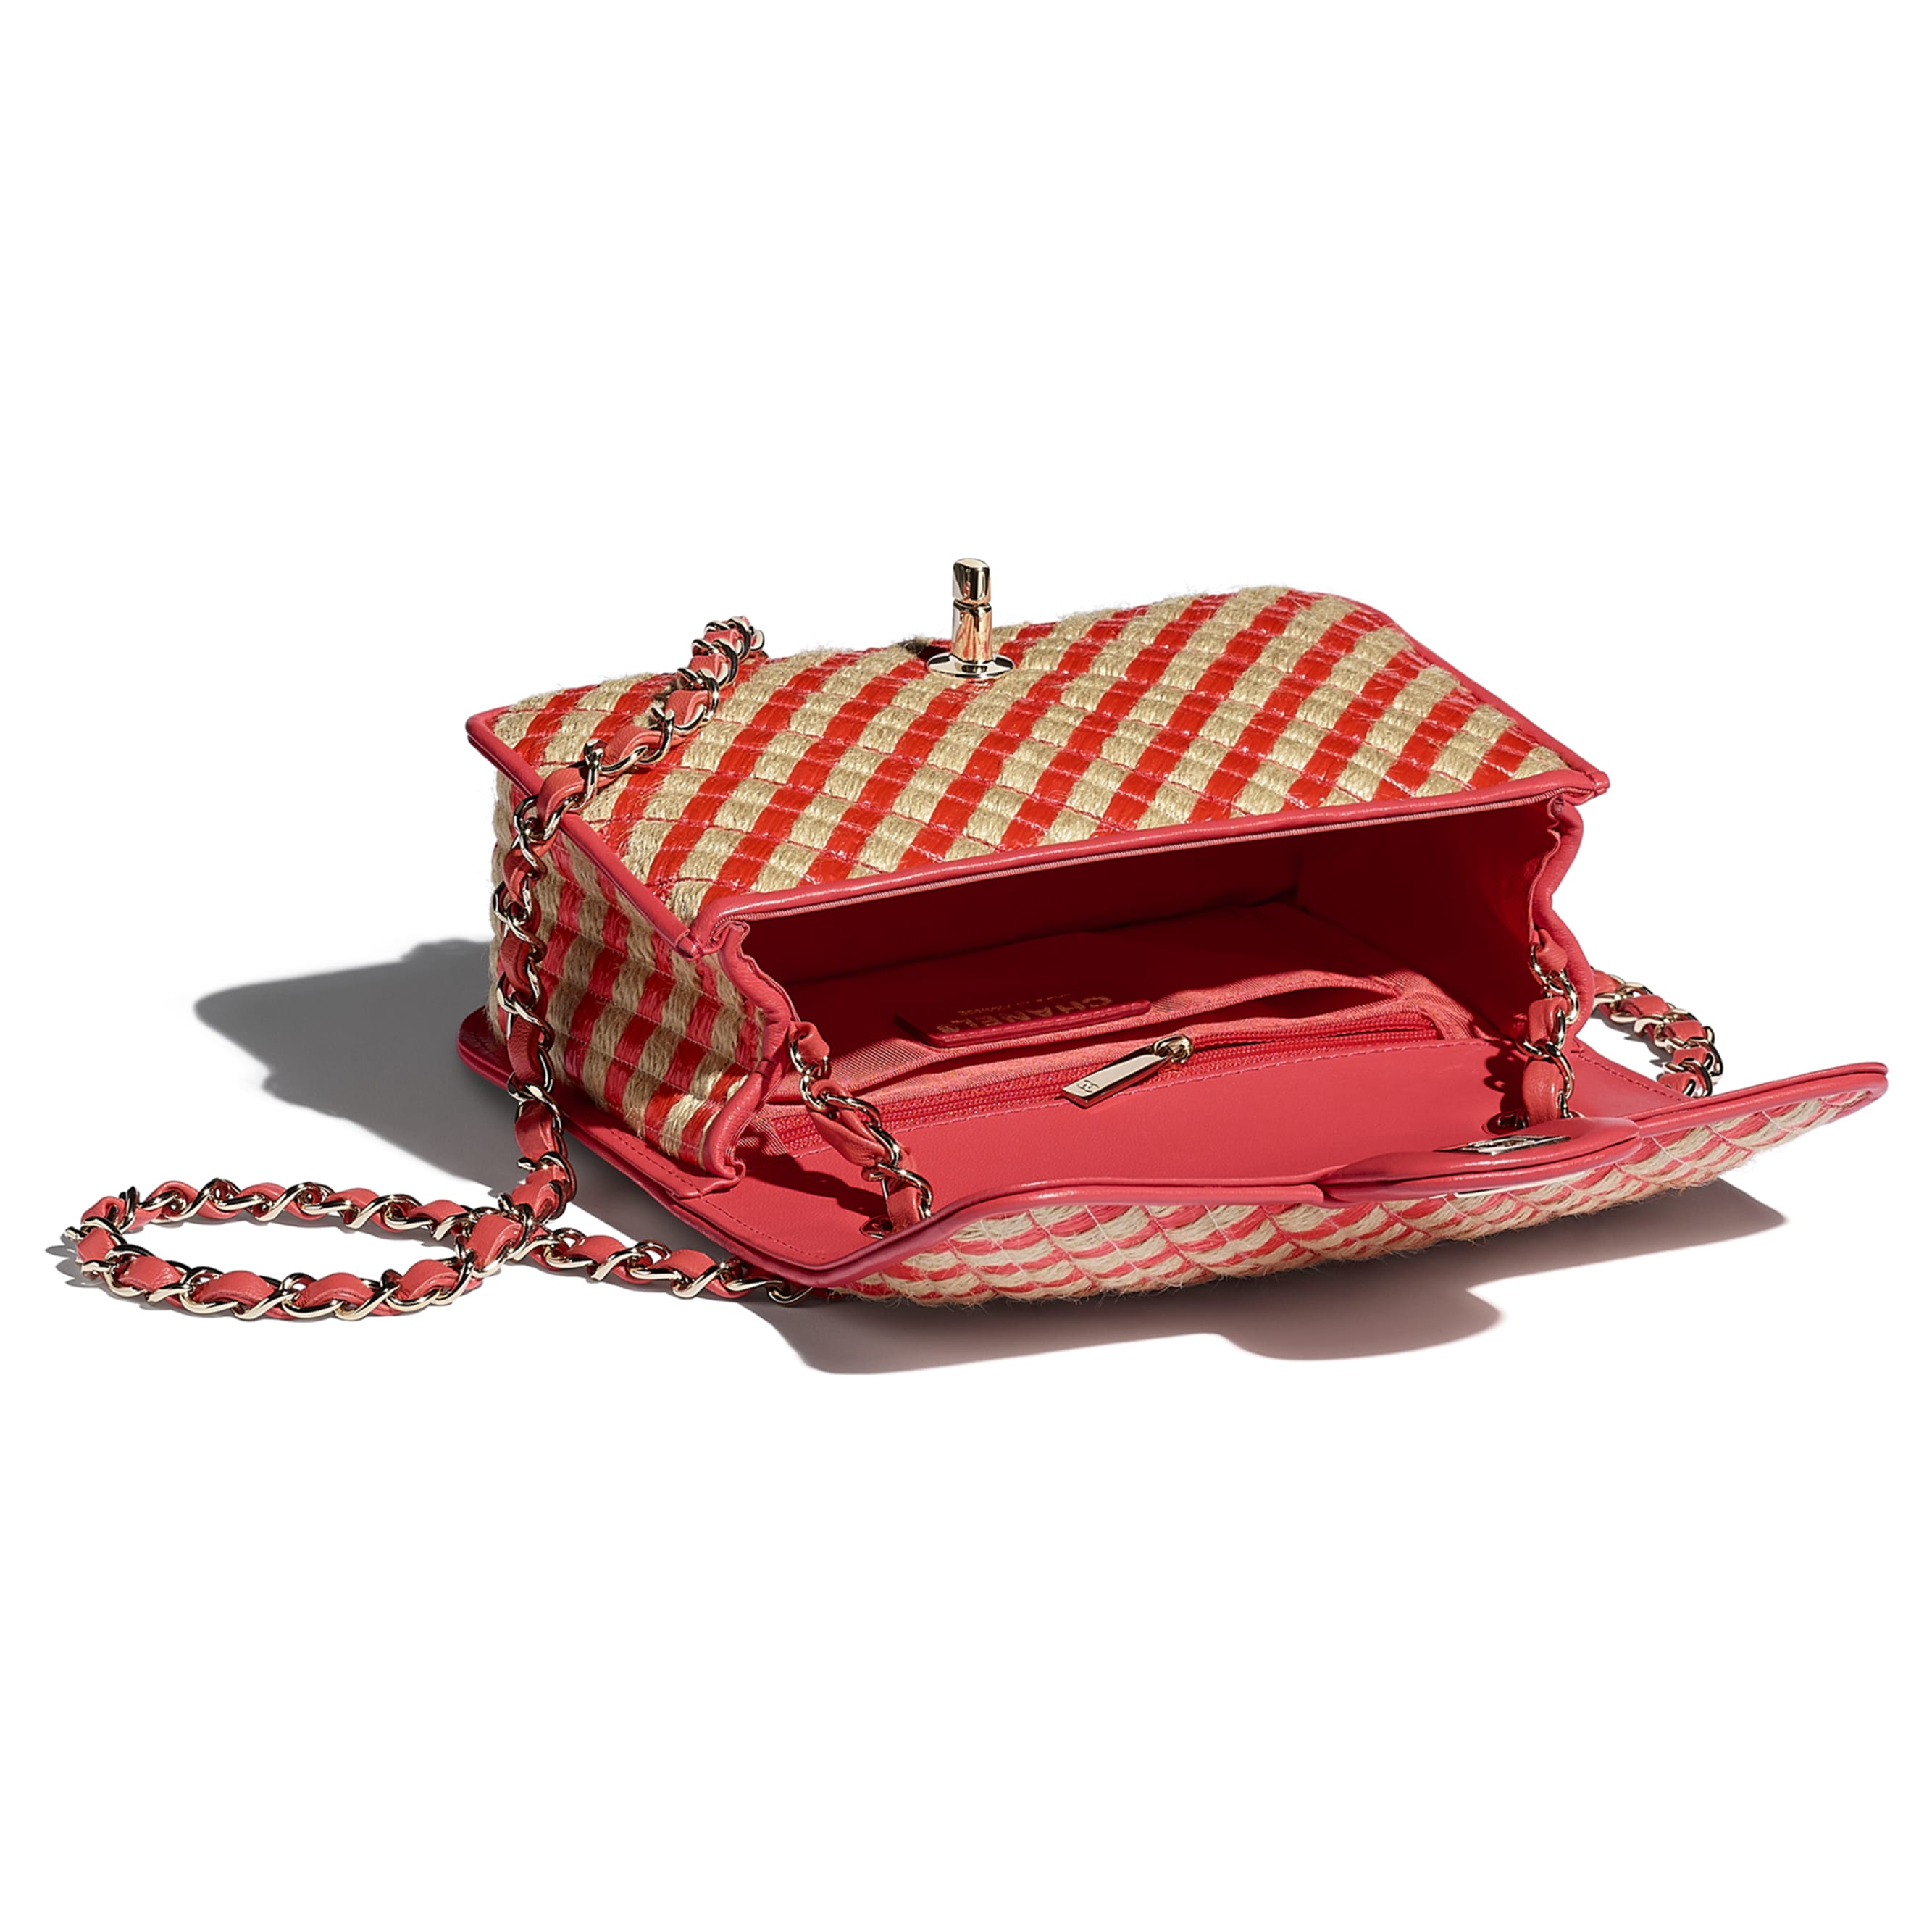 Small Flap Bag - Red & Beige - Raffia, Jute Thread & Gold-Tone Metal - CHANEL - Other view - see standard sized version